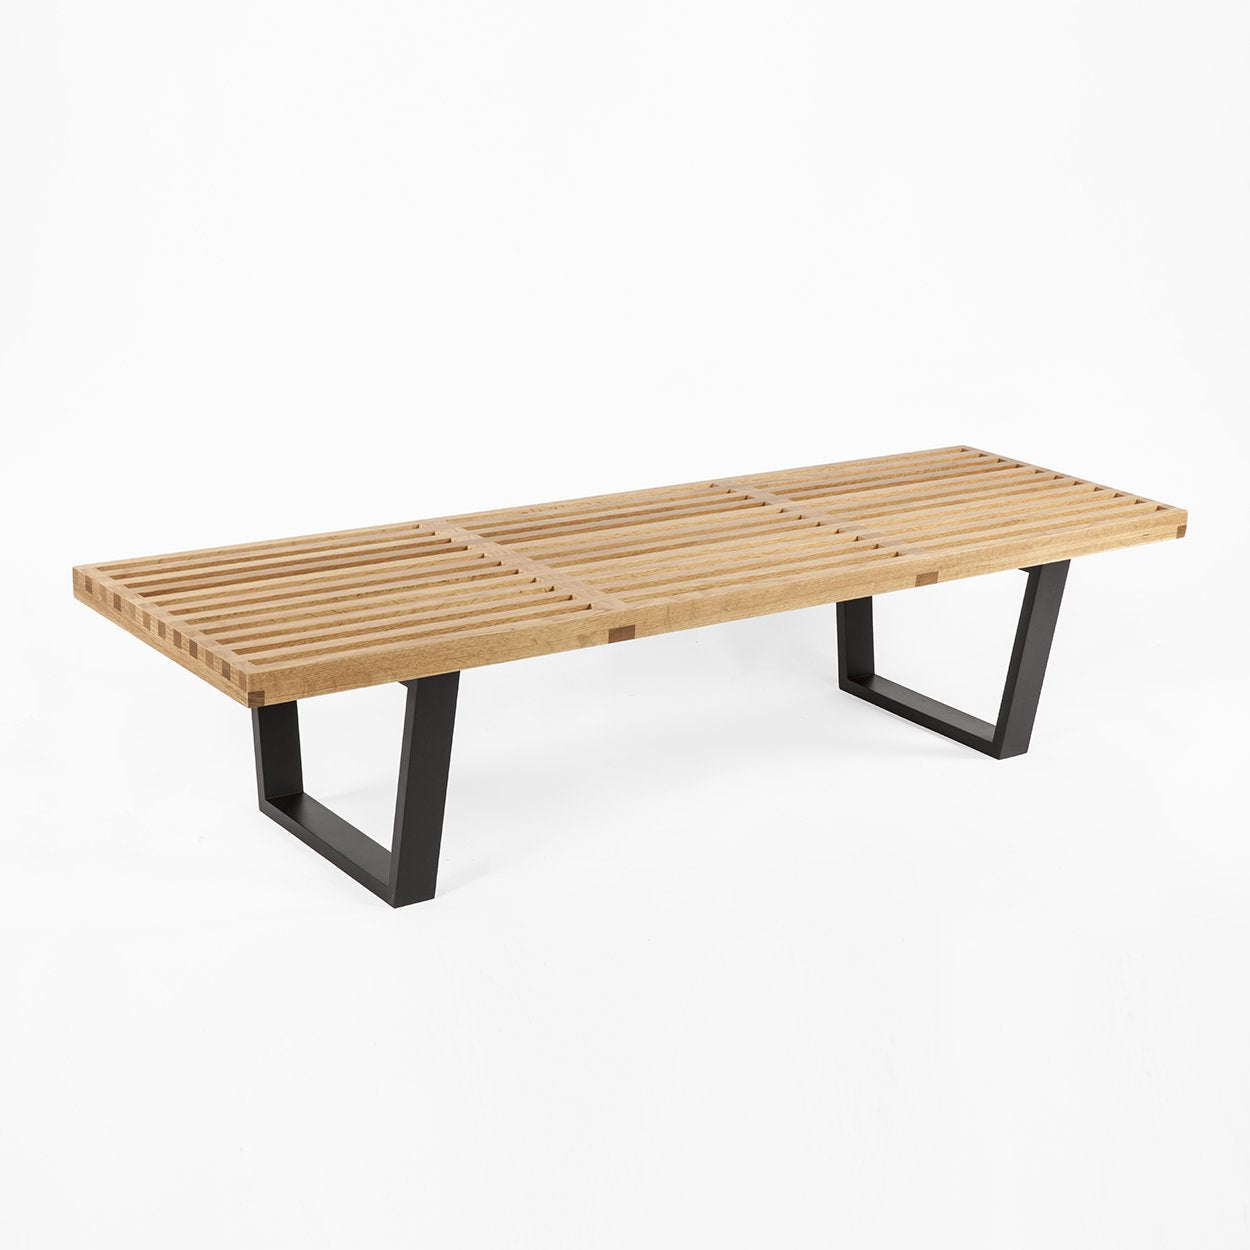 [FEC500360OAK] The Kolding Slat Bench SALE